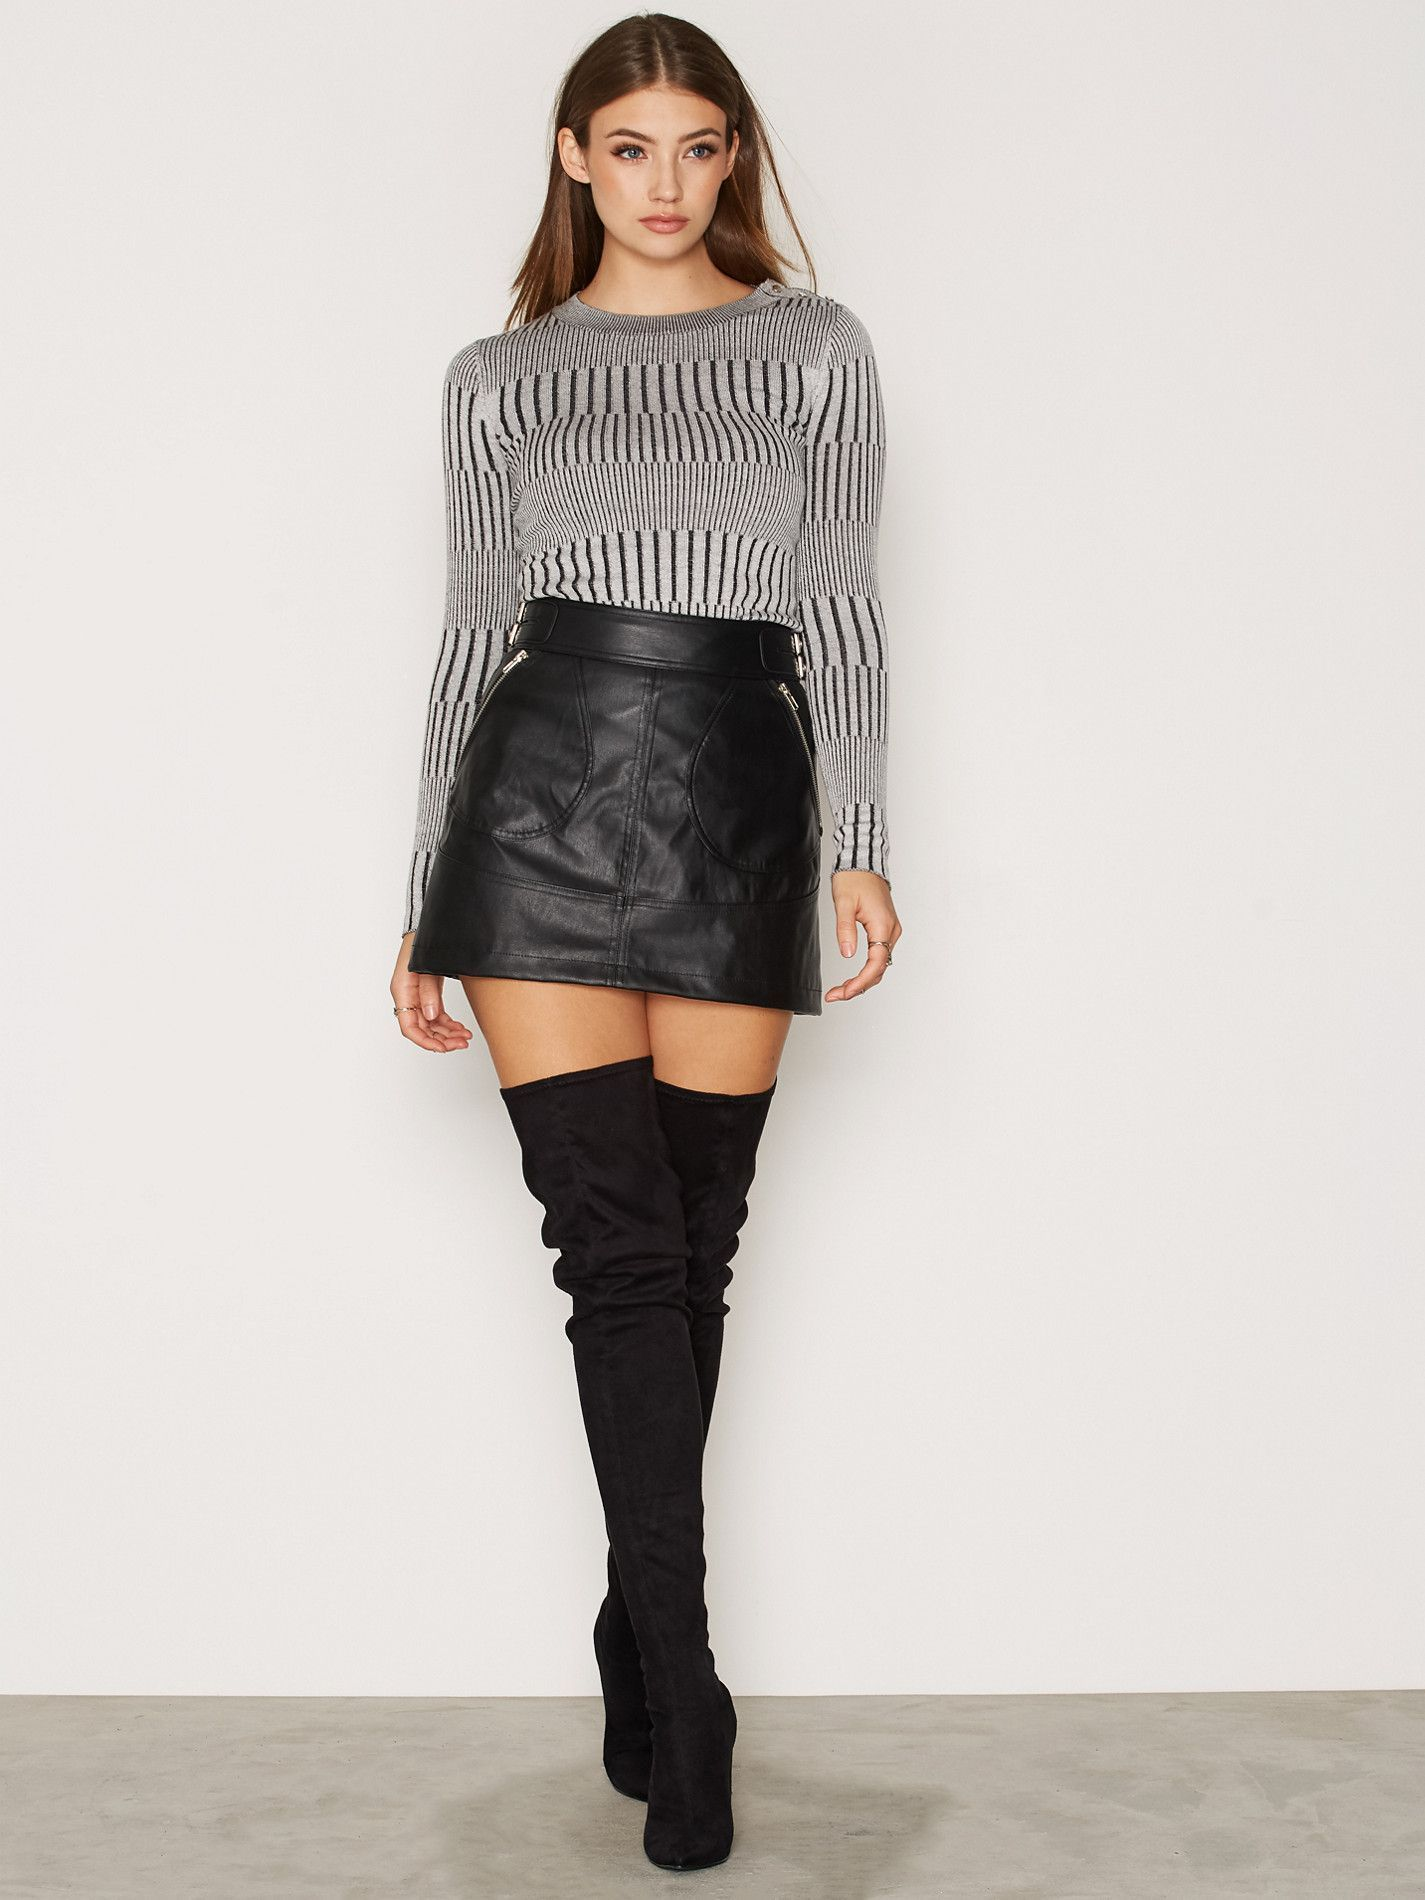 Cute outfit A-Line leather miniskirt and thigh boots # ...